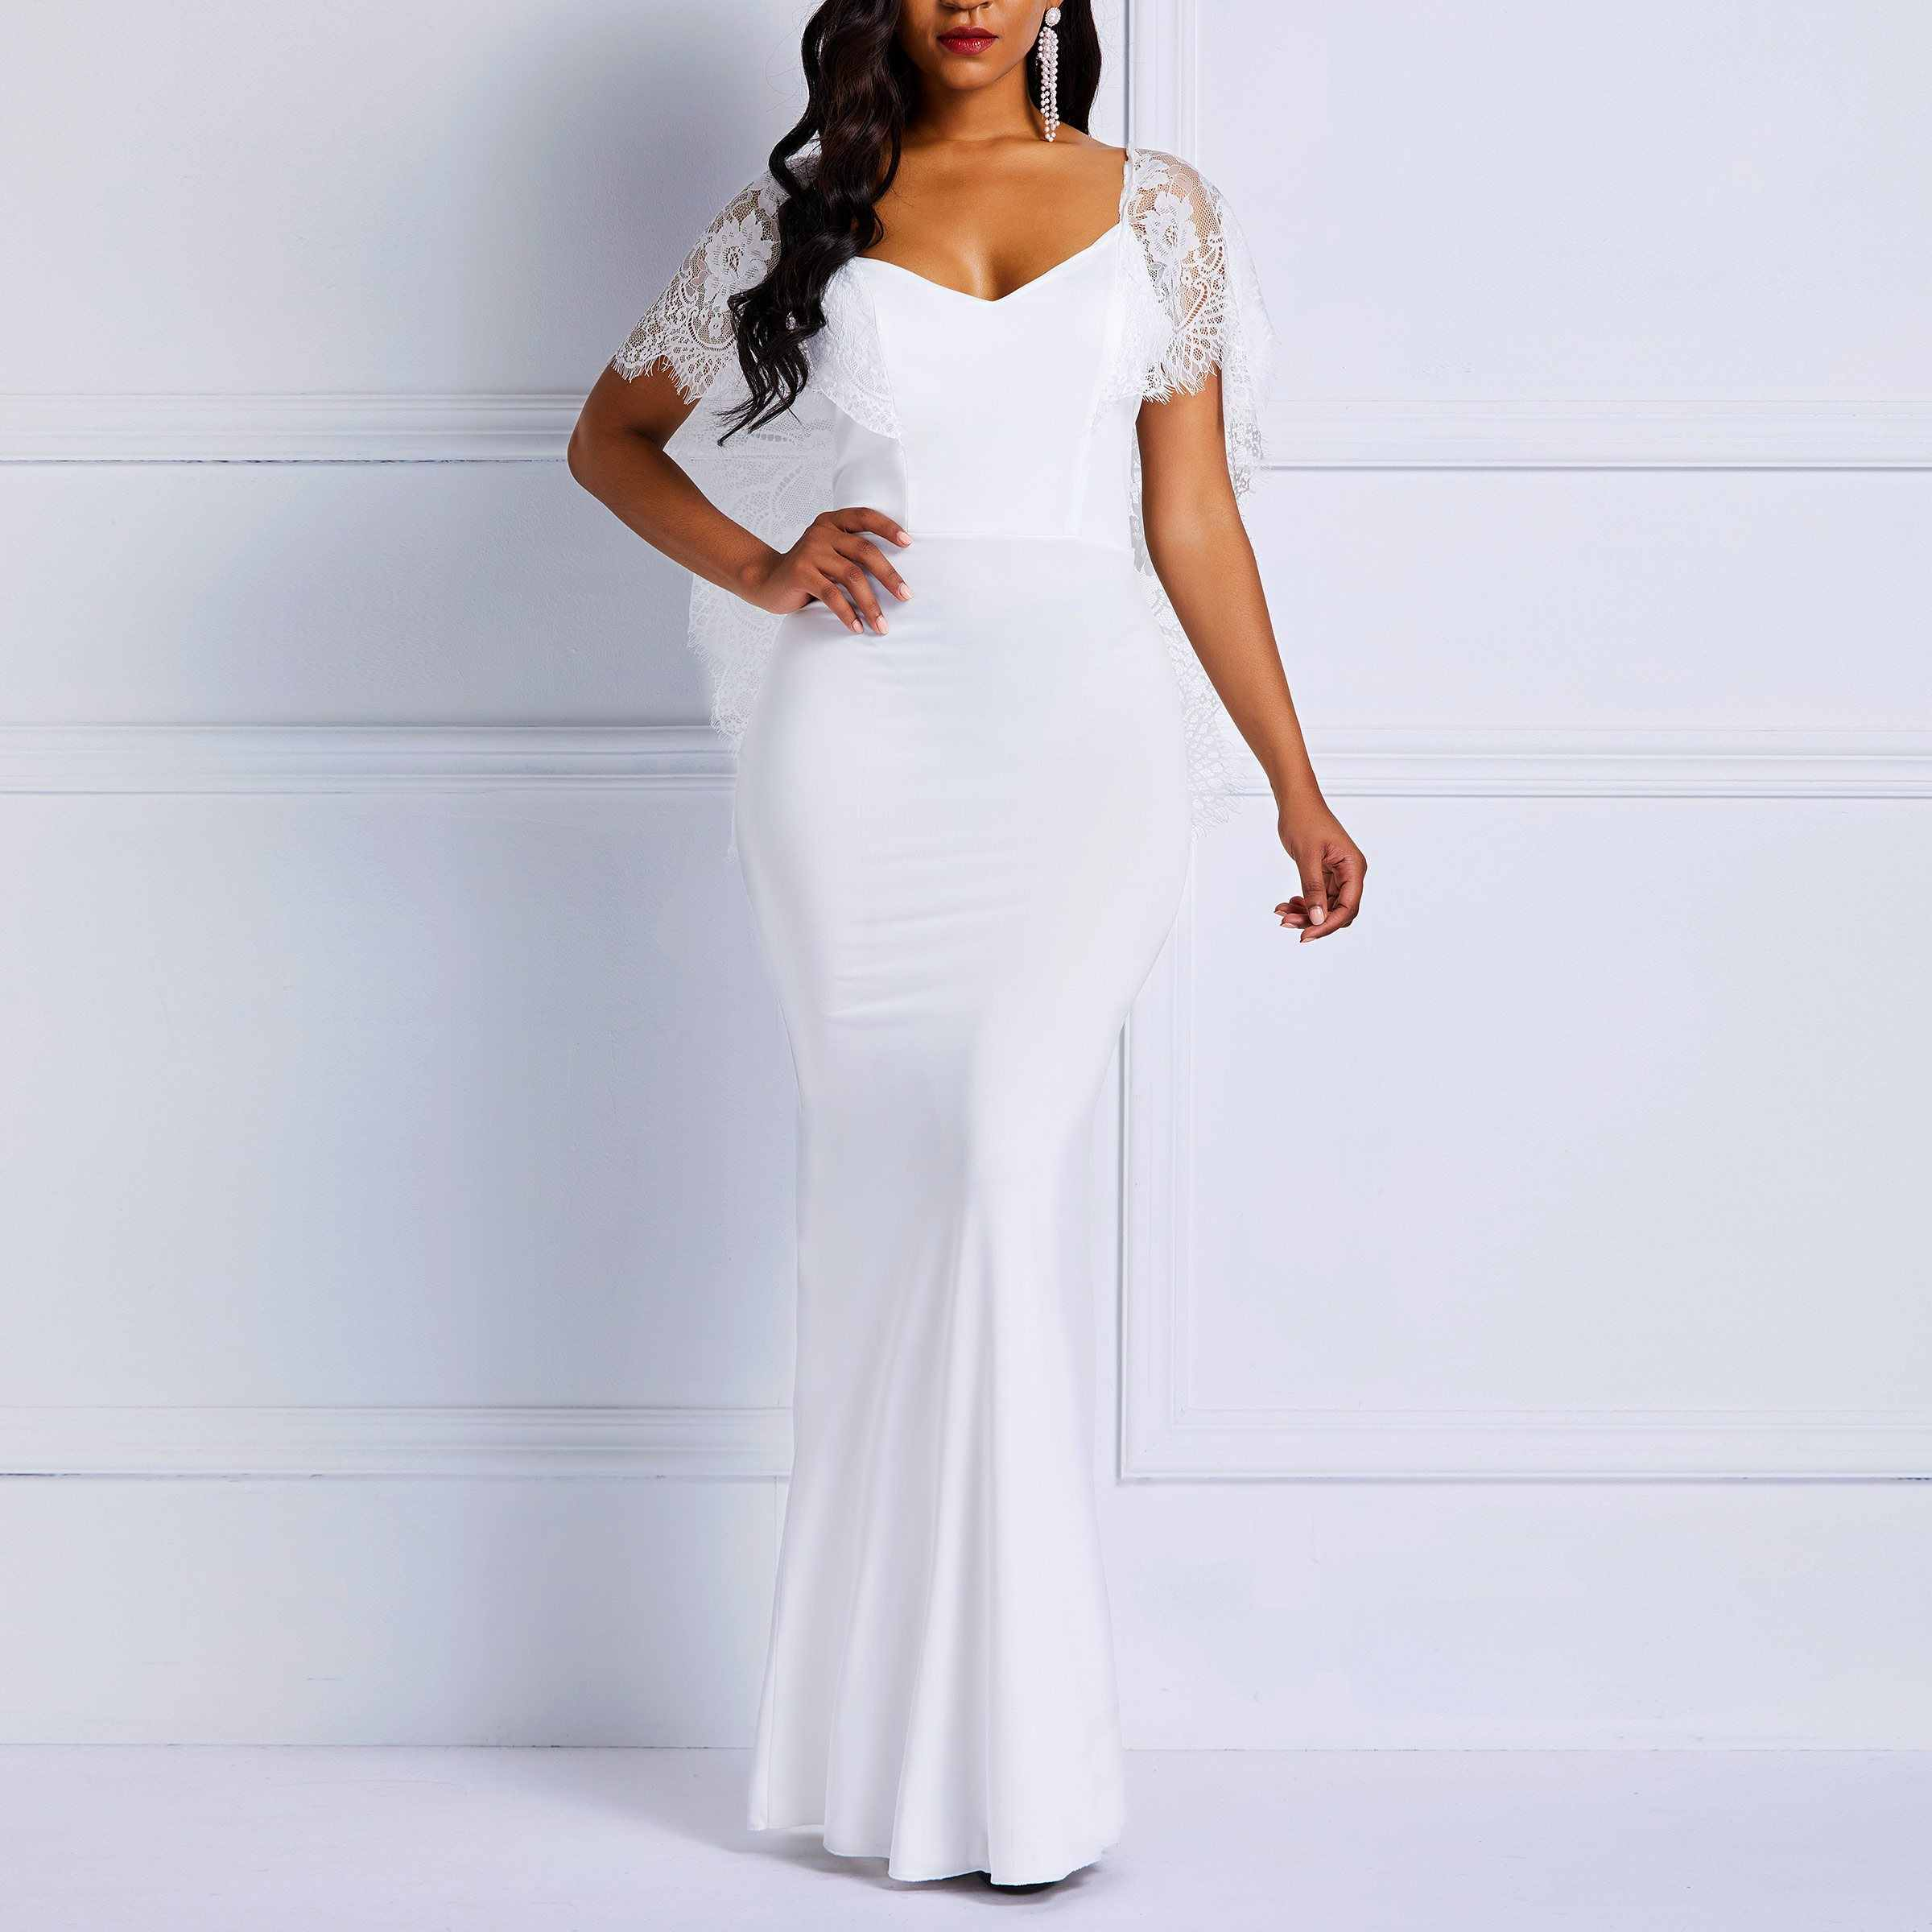 a7e5b5da86d3 Detail Feedback Questions about Clocolor Long Summer White Lace Dress Women  Backless Bodycon Sexy Simple Elegant Plain Prom Evening Party Wedding Maxi  Dress ...